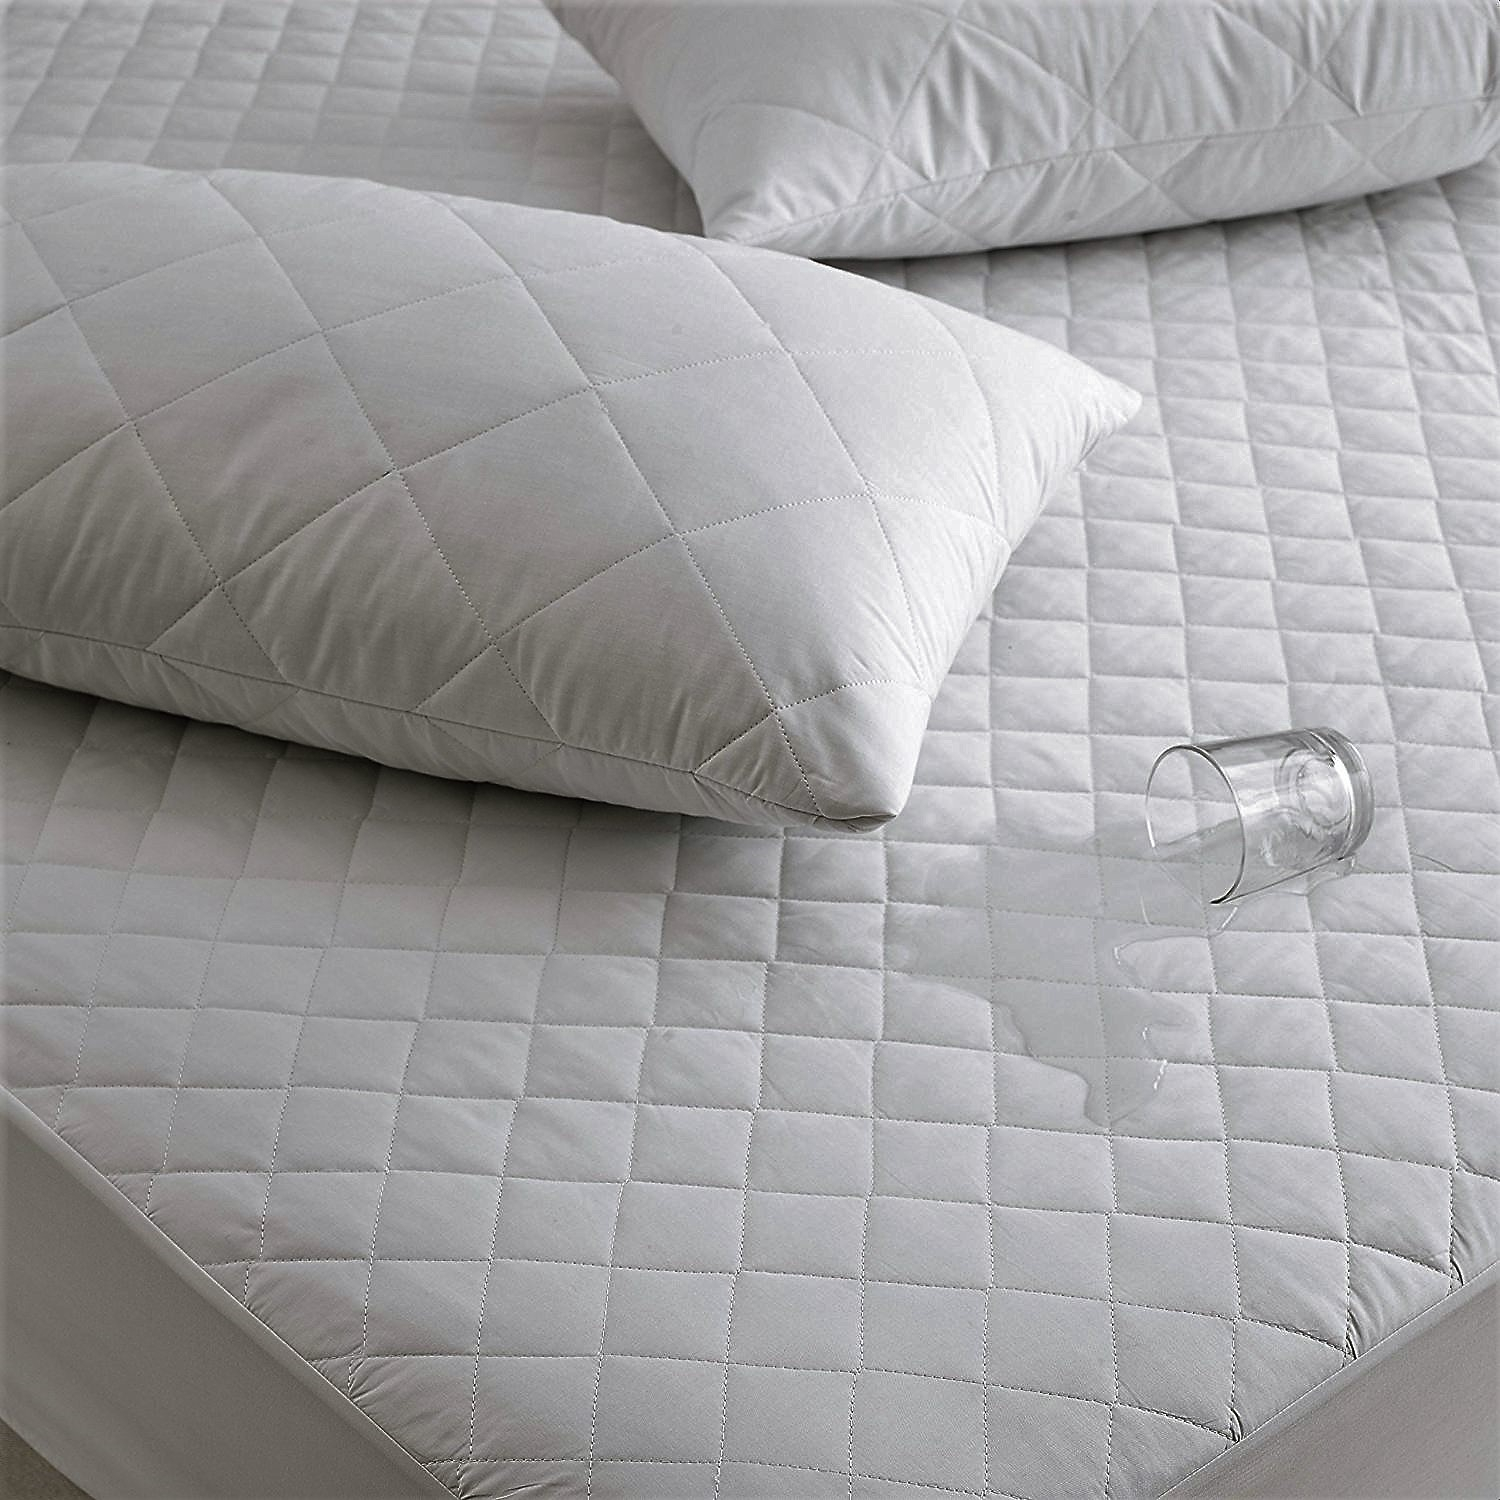 T_180_Quilted_waterproof_mattress_protector_1.jpg